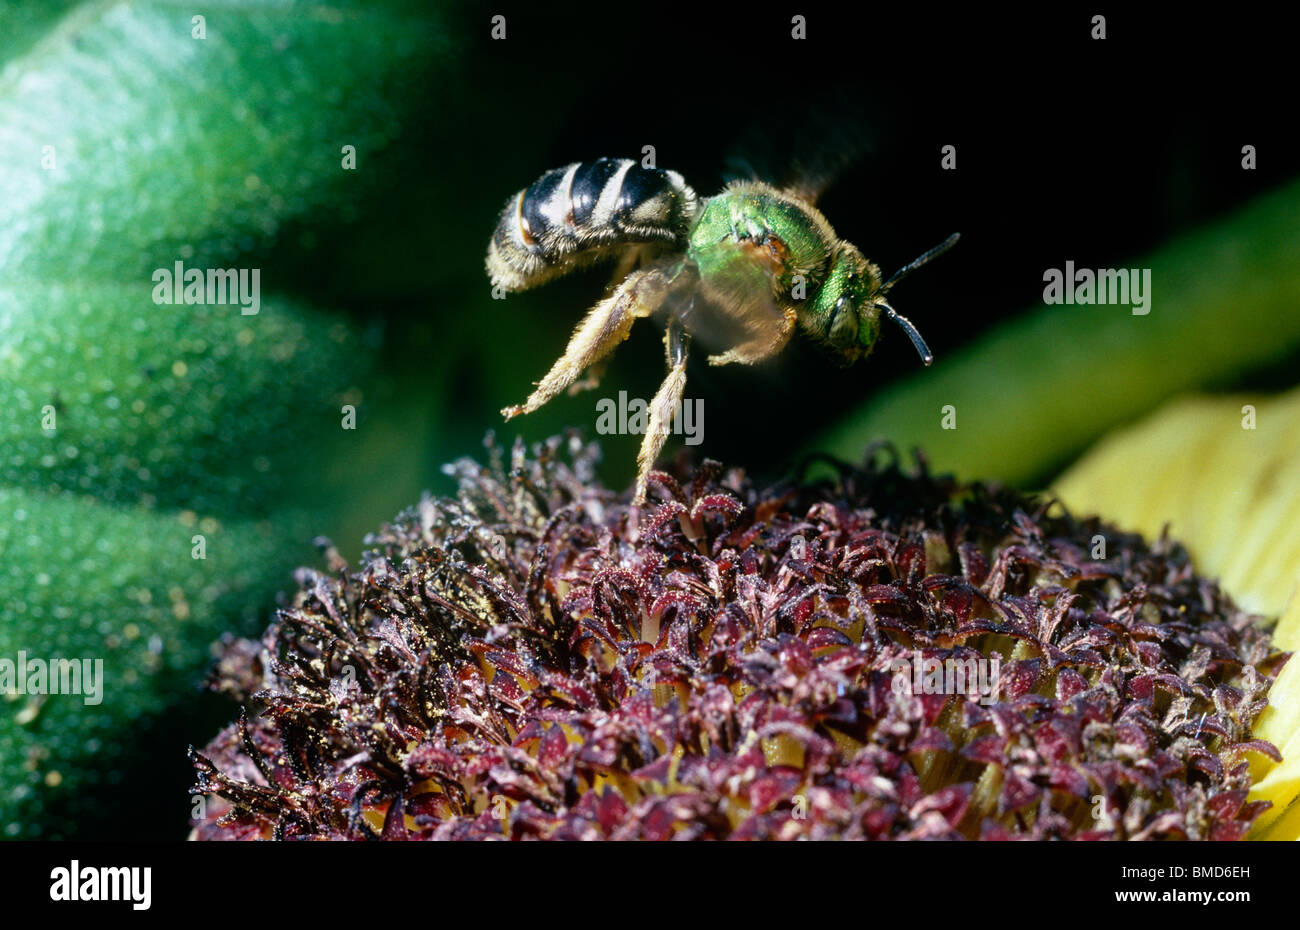 Virescent green metallic bee (Agapostemon virescens: Halictidae) about to land on a zinnia flower, USA - Stock Image